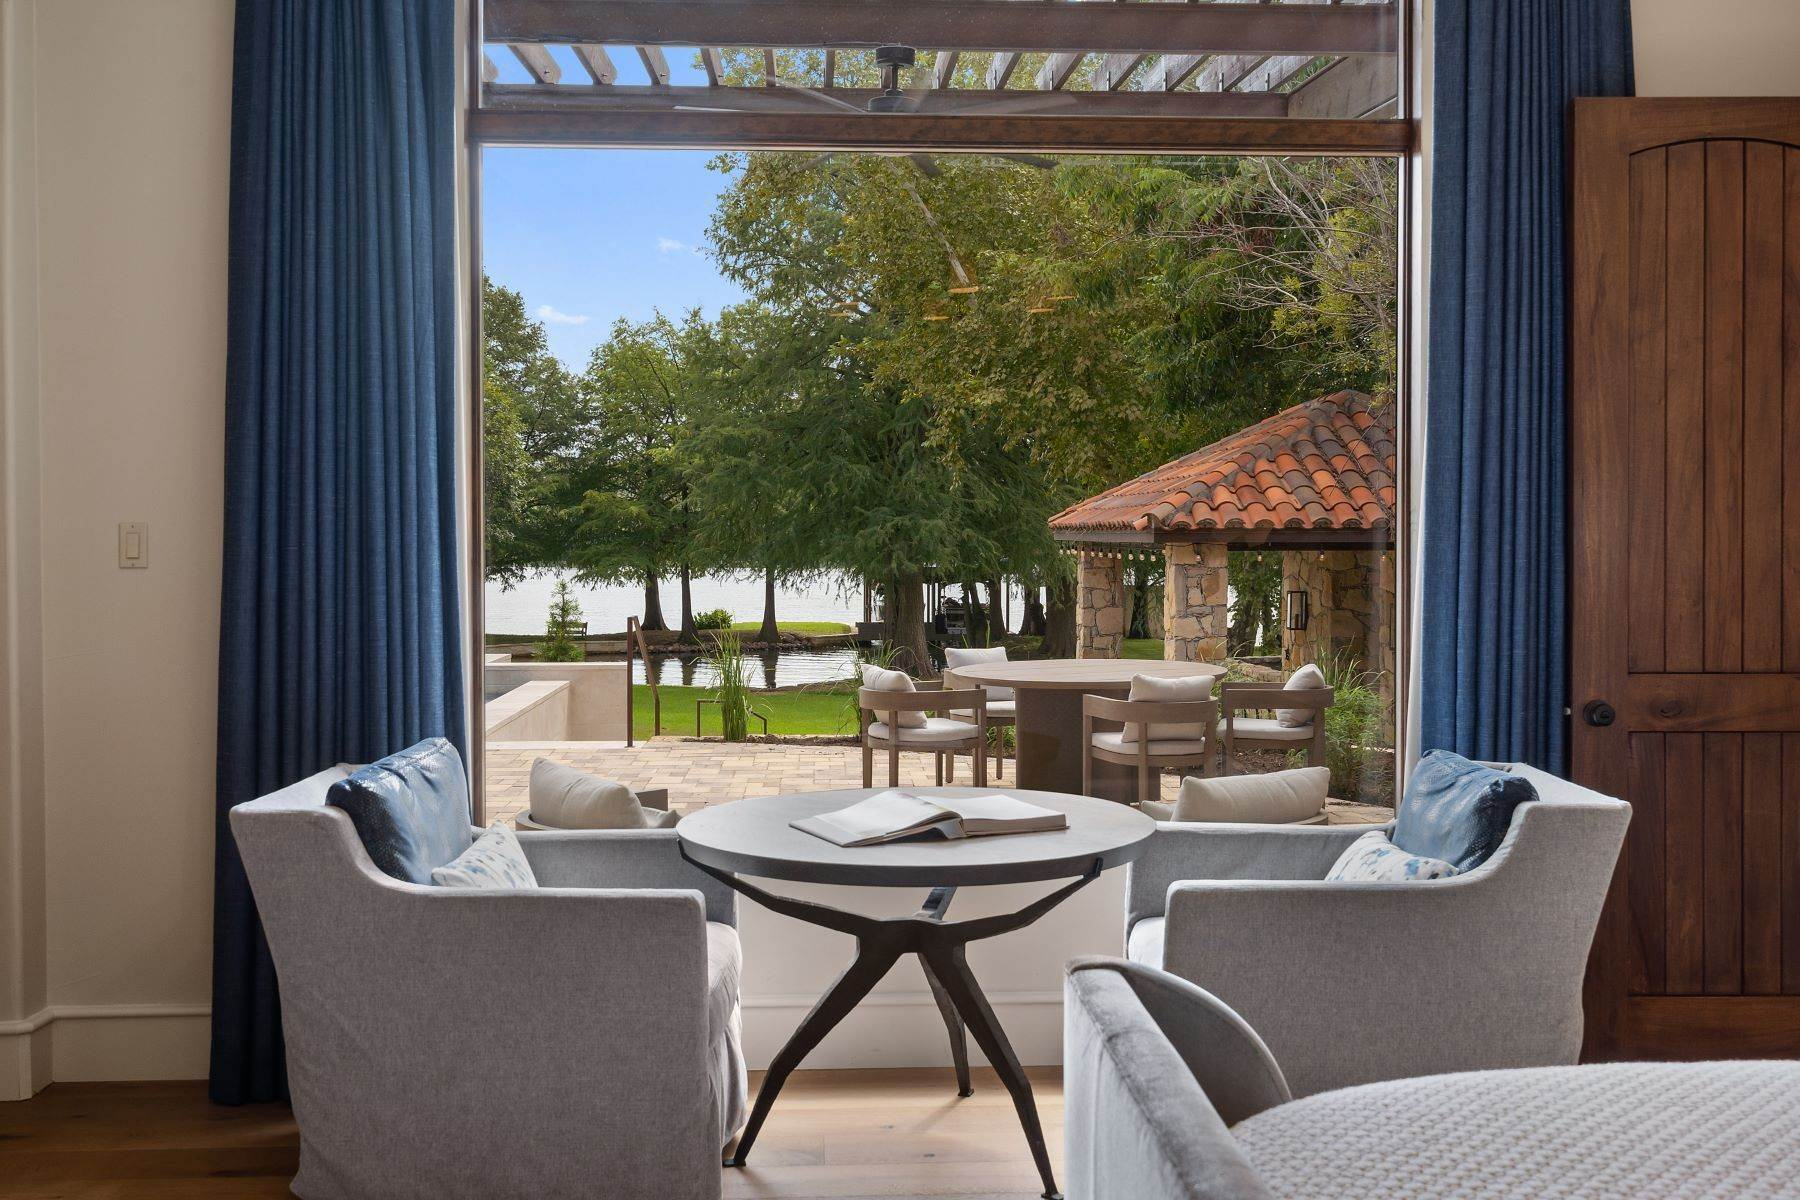 Single Family Homes for Sale at Beautiful Lake Austin Waterfront Villa 2611 Westlake Drive Austin, Texas 78746 United States